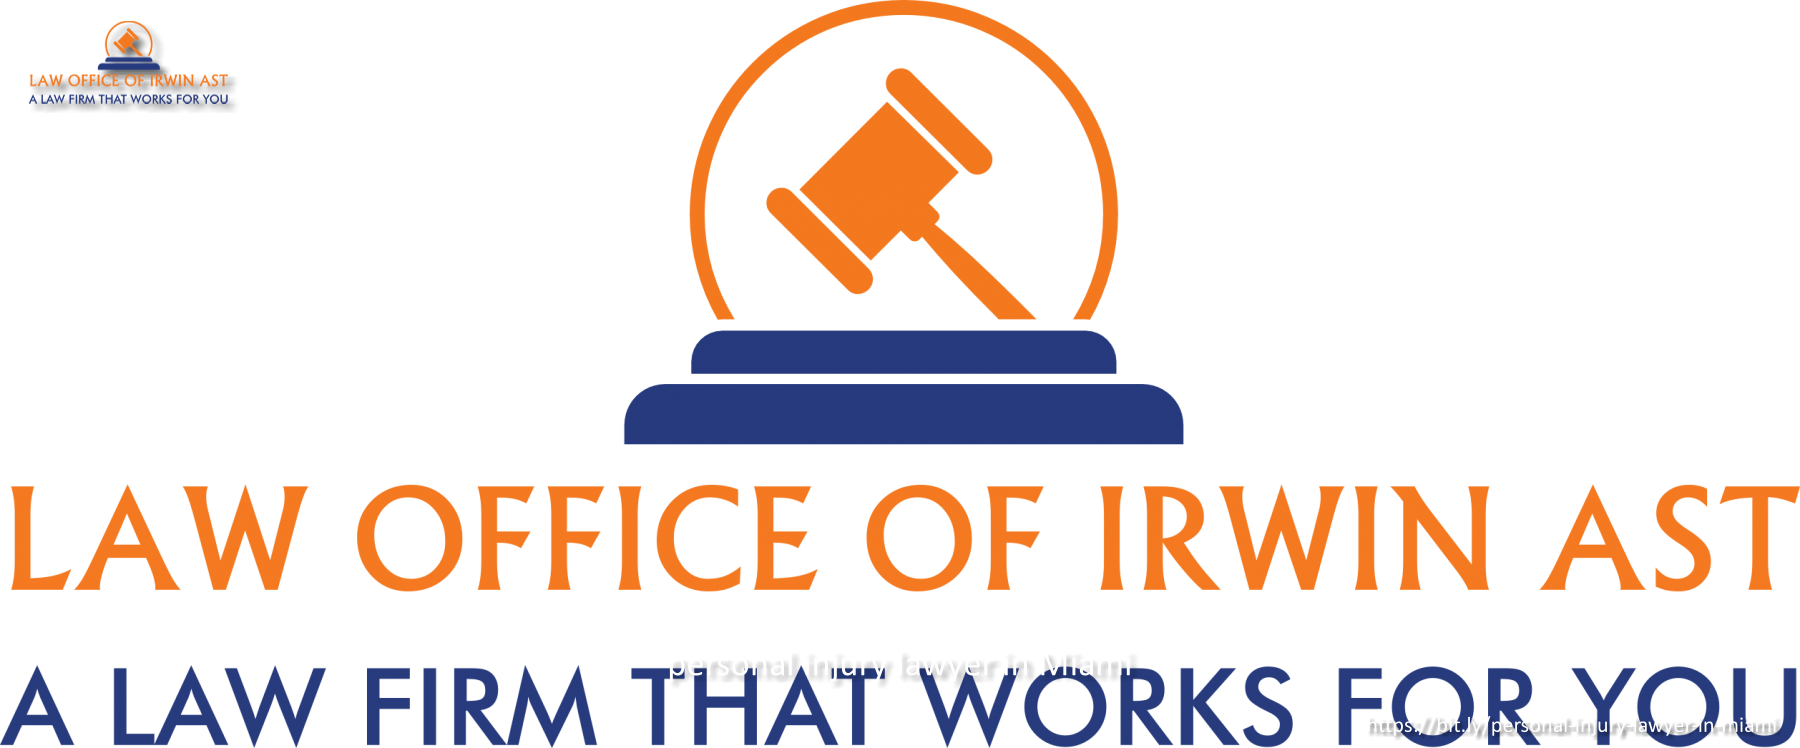 Law Office of Irwin Ast in Miami Explains Florida Personal Injury Law